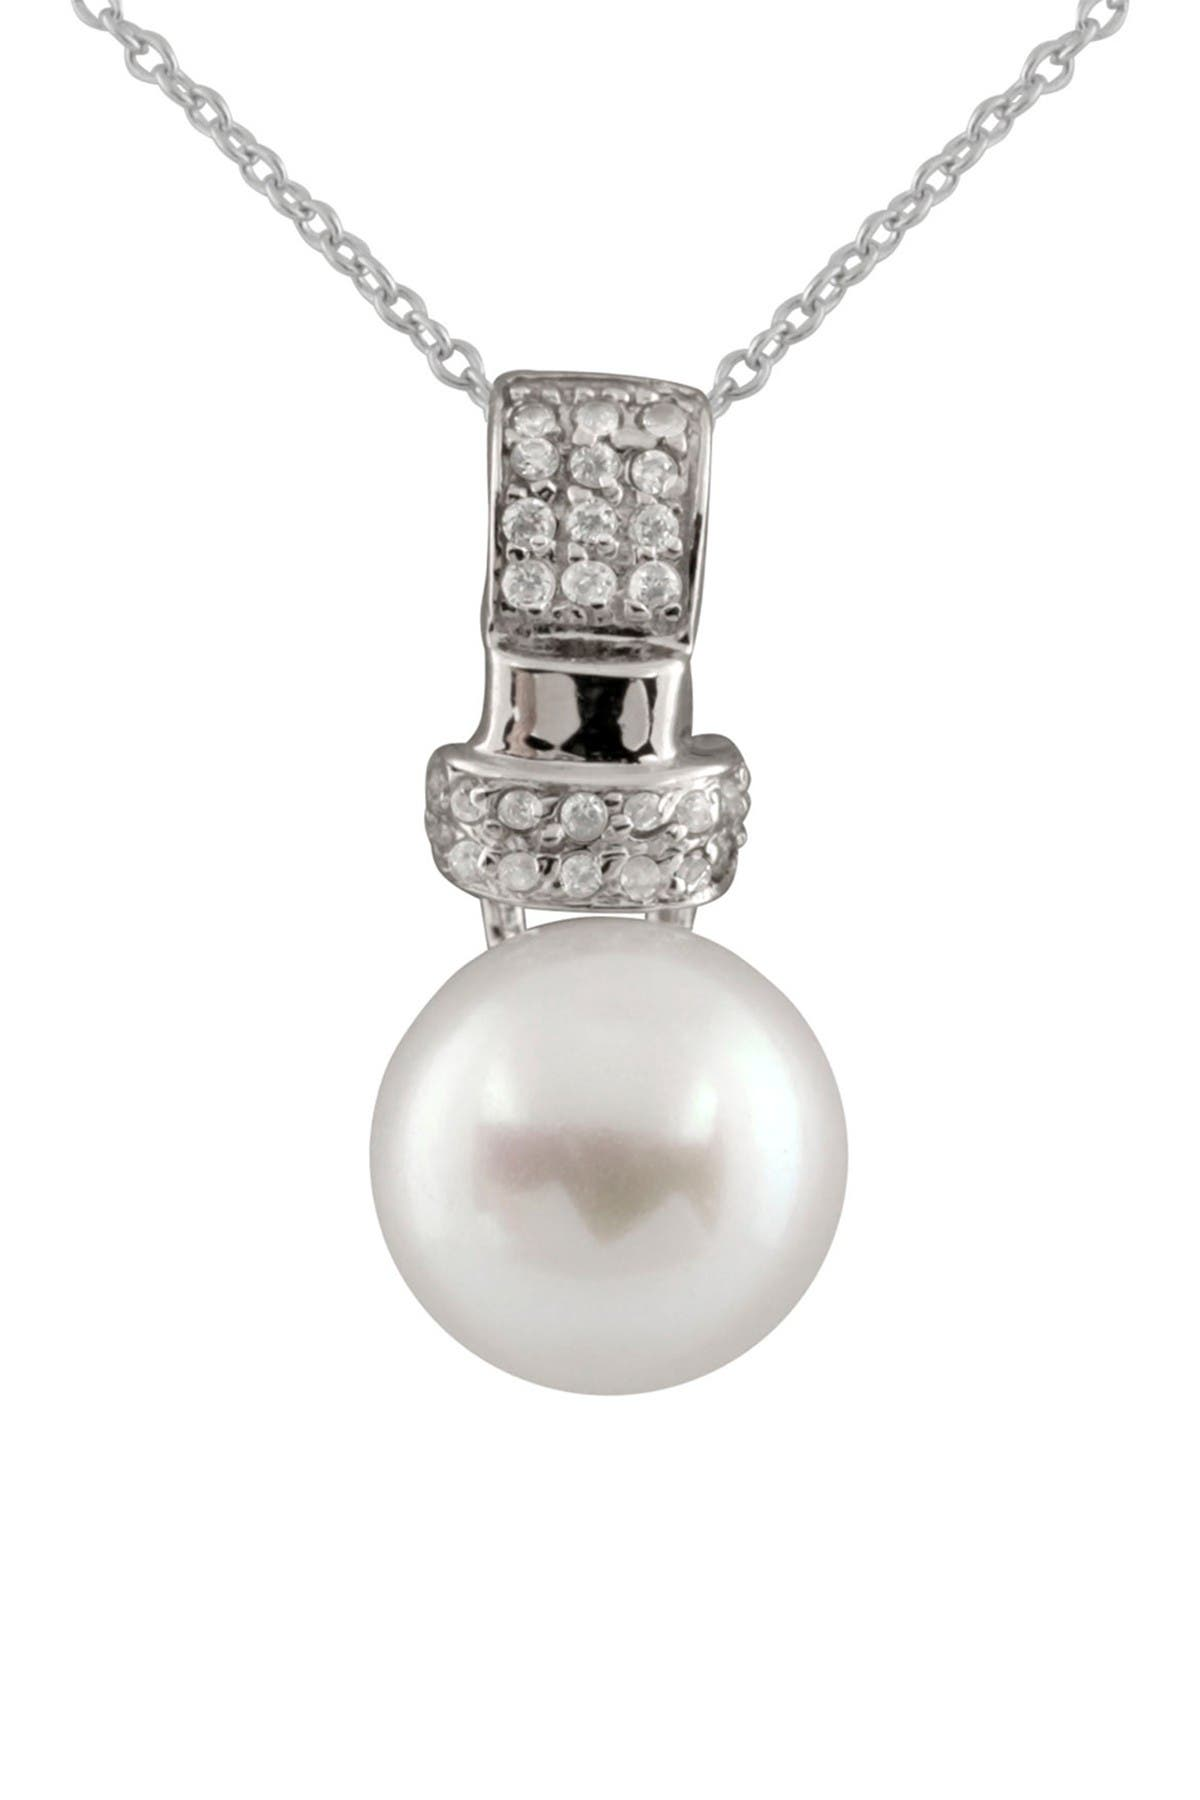 Image of Splendid Pearls 9-10mm White Freshwater Pearl & CZ Pendant Necklace